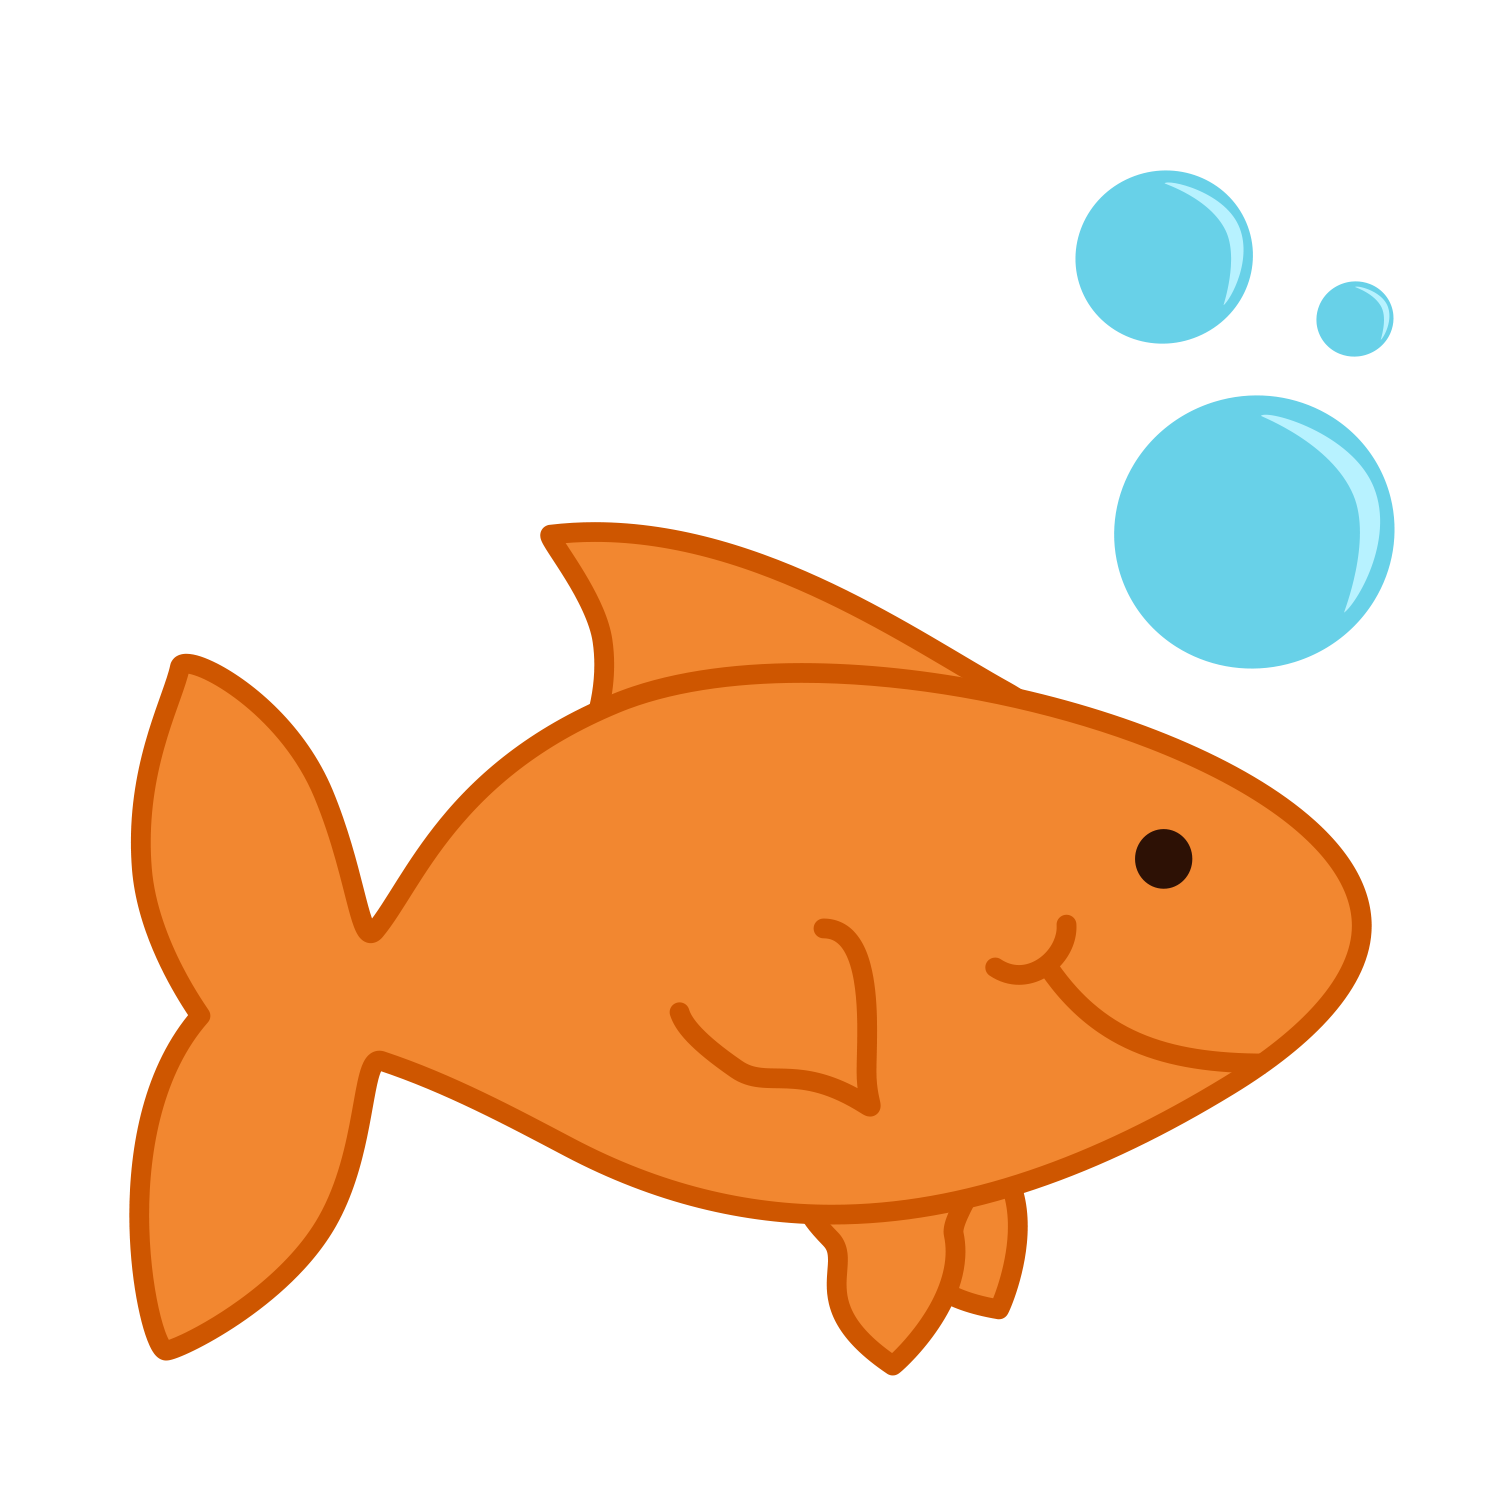 Blank fish clipart image transparent Image result for goldfish clipart | BBs party | Pinterest | Goldfish ... image transparent